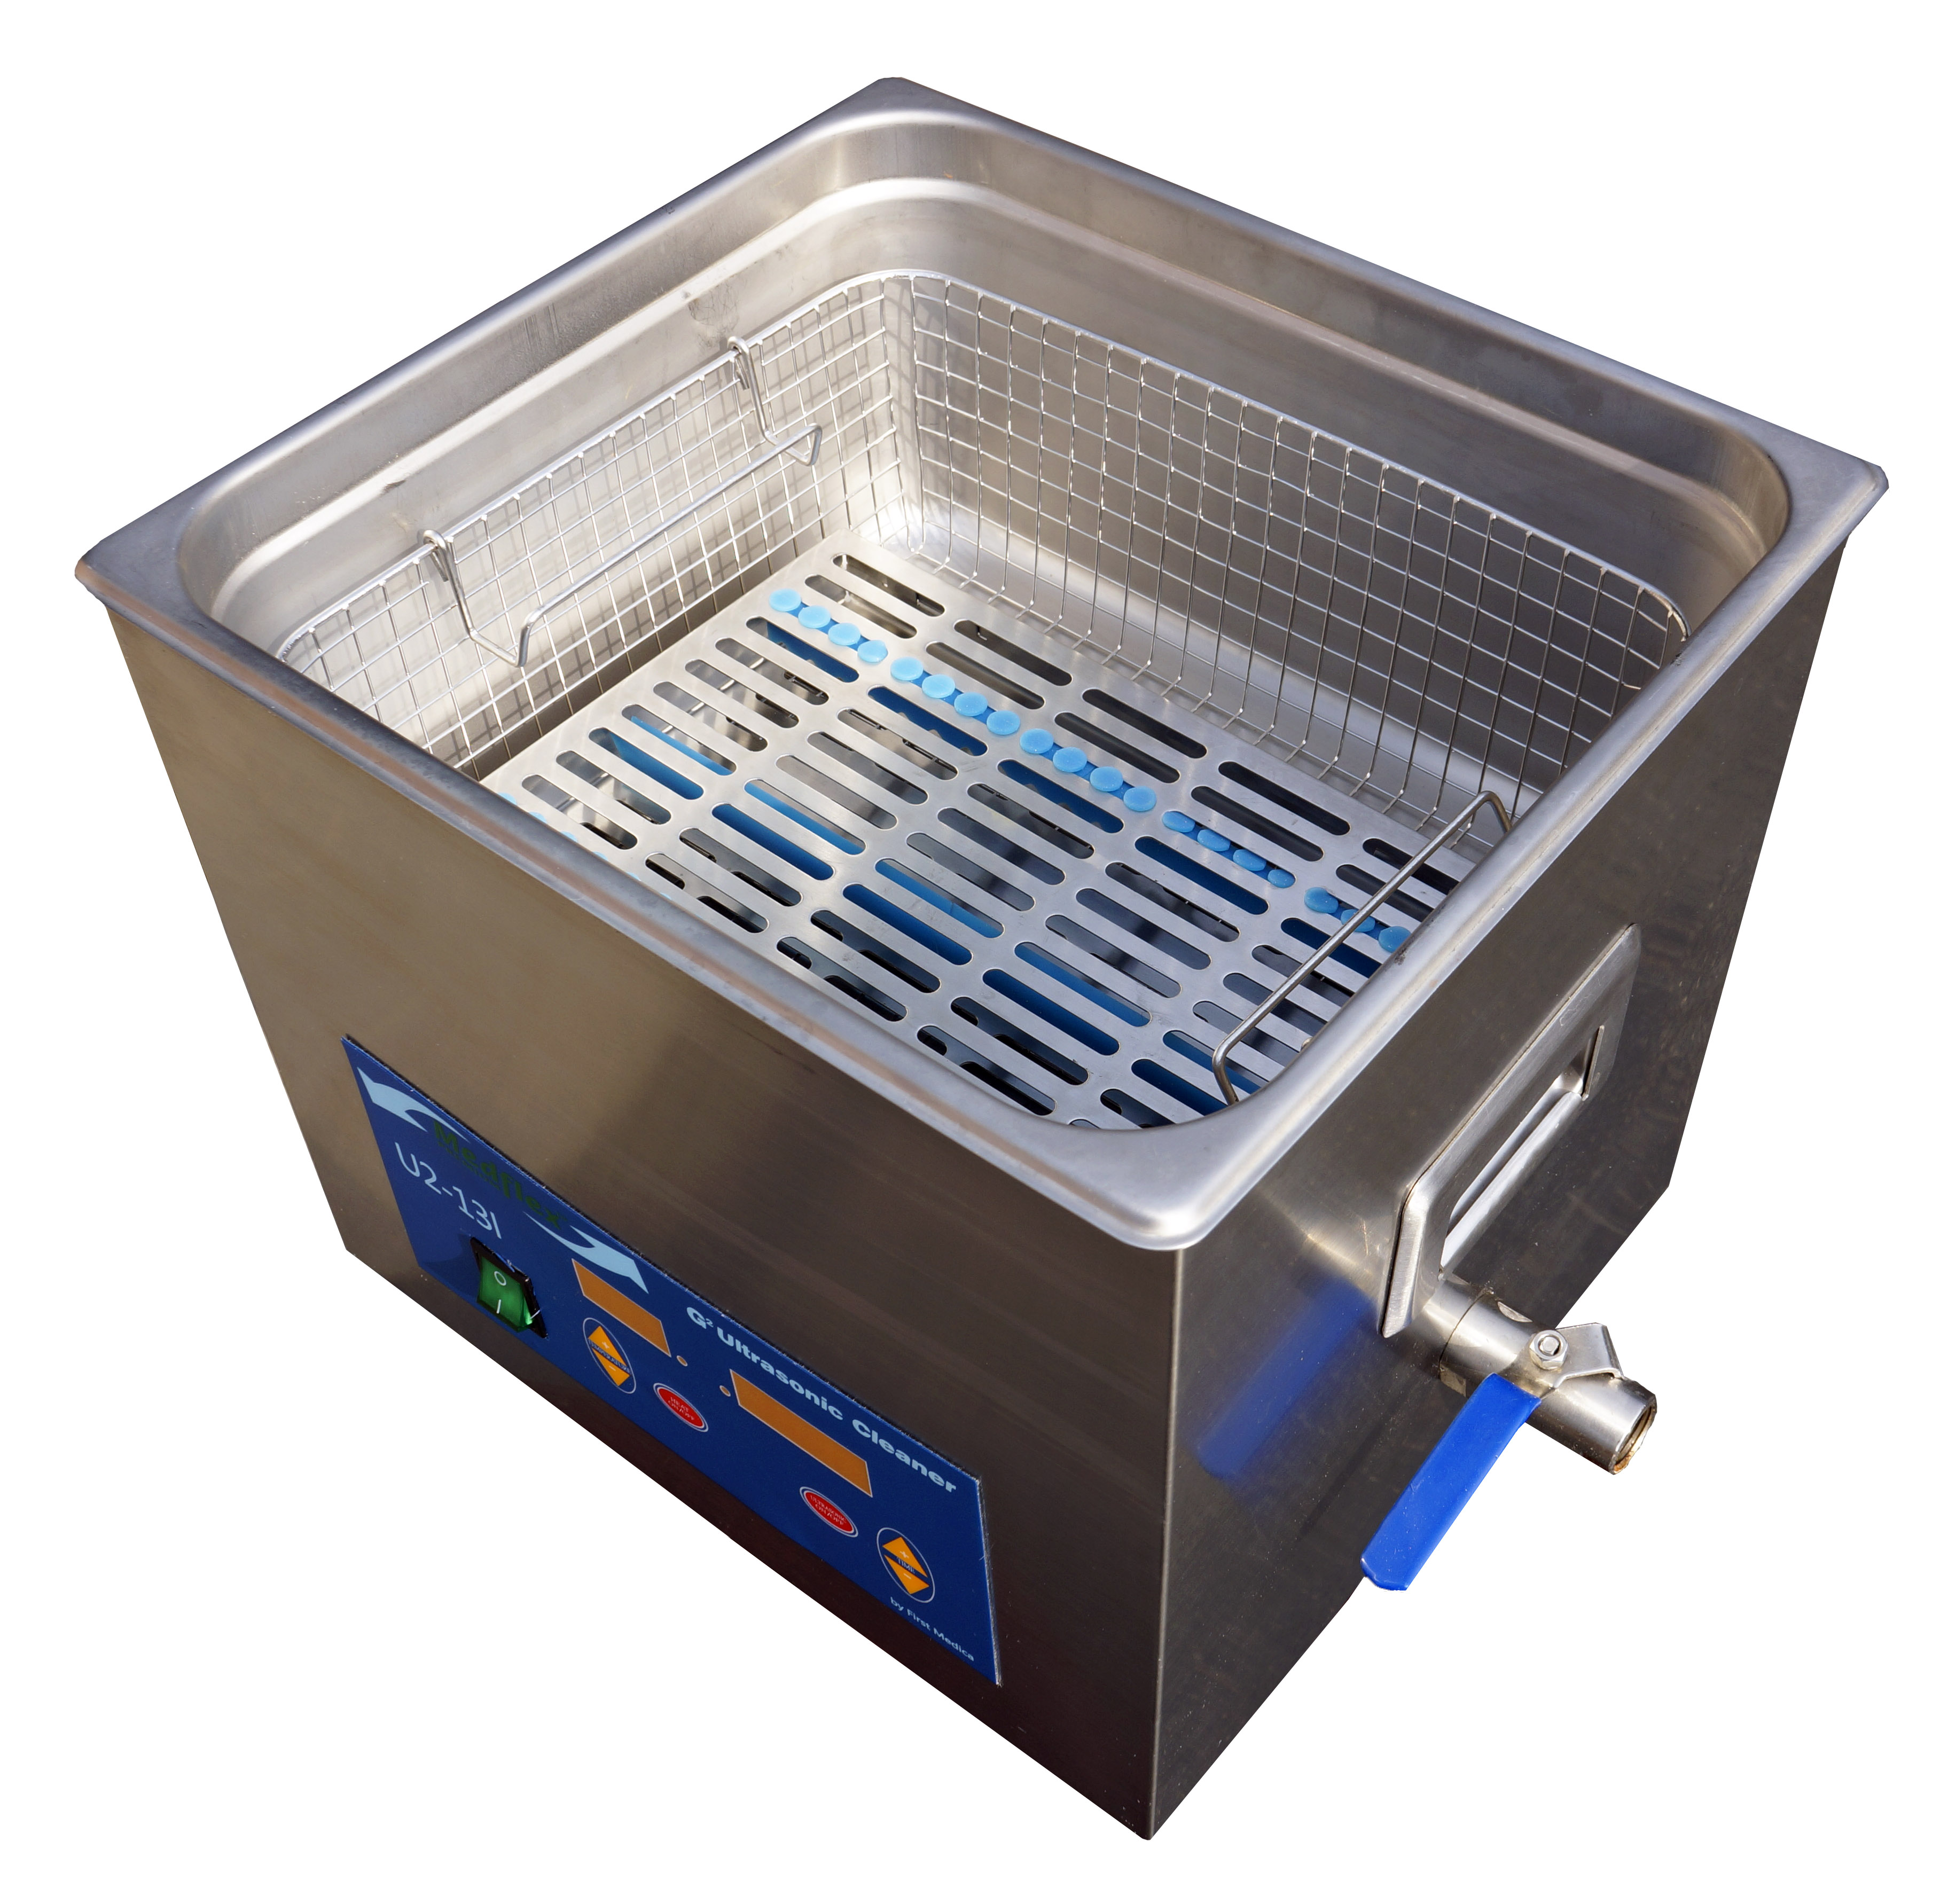 Medflex U2-13L Ultrasonic Cleaner